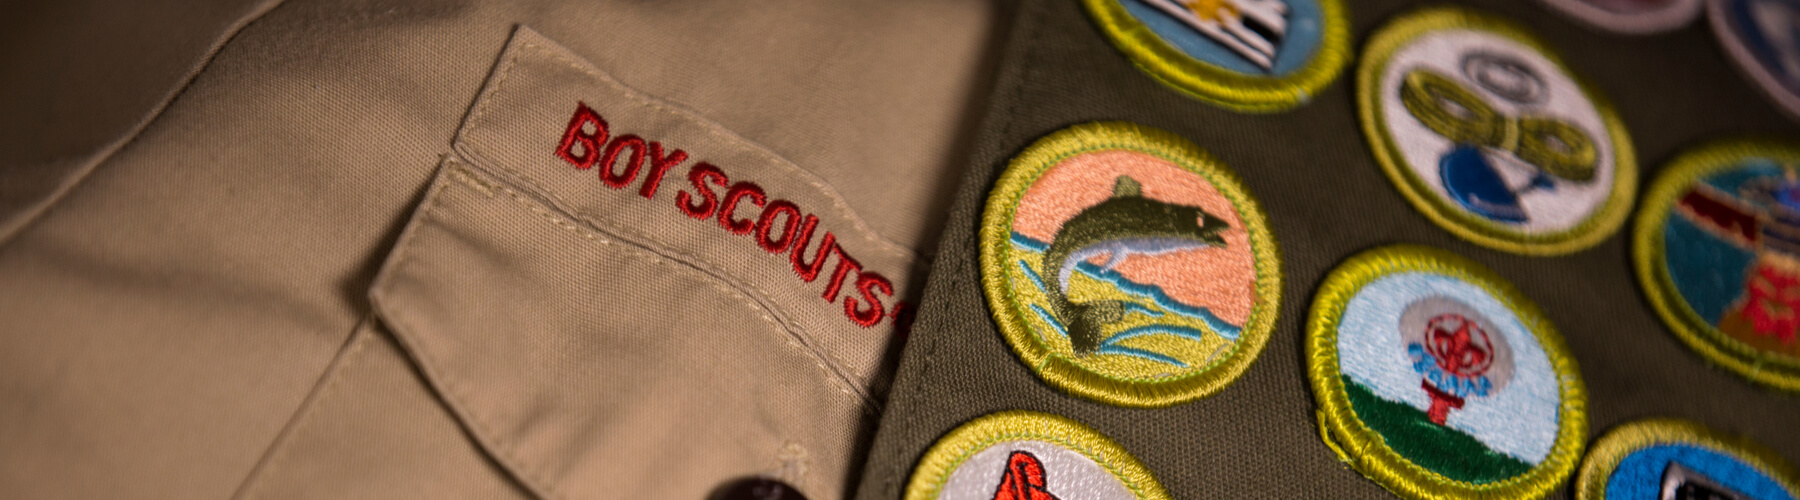 Boy Scout badges and uniform